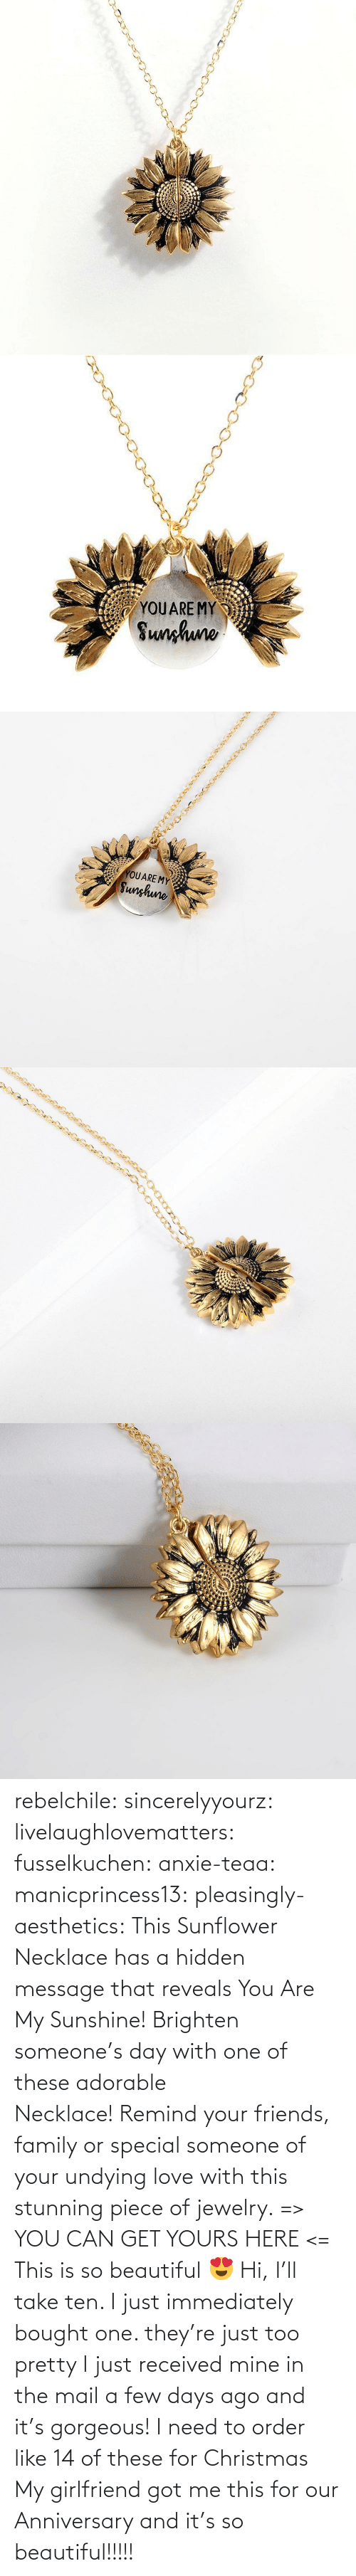 this is: rebelchile:  sincerelyyourz:  livelaughlovematters:  fusselkuchen:  anxie-teaa:   manicprincess13:   pleasingly-aesthetics:  This Sunflower Necklace has a hidden message that reveals You Are My Sunshine! Brighten someone's day with one of these adorable Necklace! Remind your friends, family or special someone of your undying love with this stunning piece of jewelry. => YOU CAN GET YOURS HERE <=   This is so beautiful 😍    Hi, I'll take ten.    I just immediately bought one. they're just too pretty   I just received mine in the mail a few days ago and it's gorgeous!   I need to order like 14 of these for Christmas    My girlfriend got me this for our Anniversary and it's so beautiful!!!!!